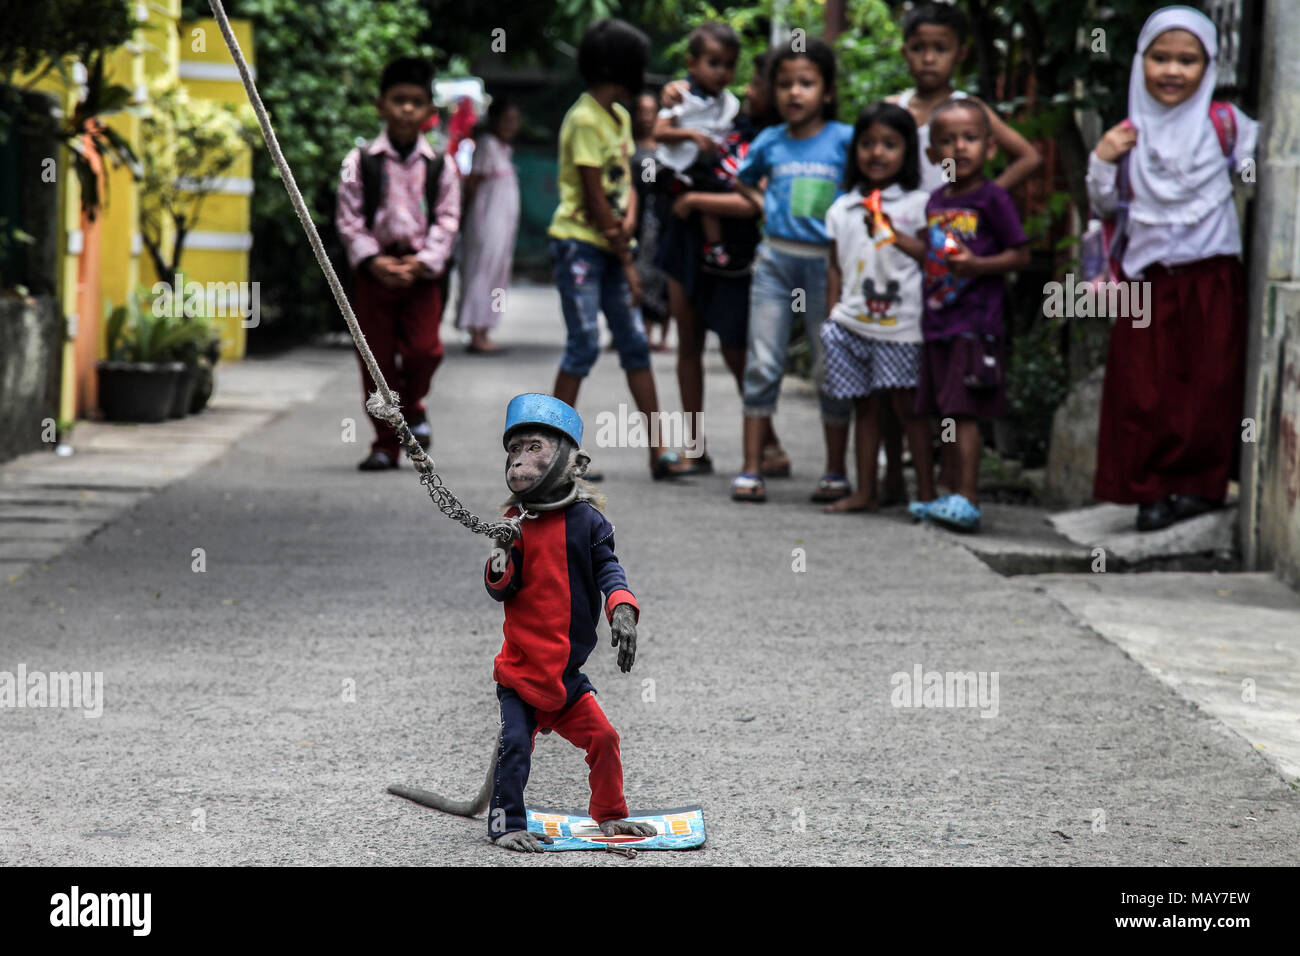 Medan, North Sumatra, Indonesia. 5th Apr, 2018. Ucil, a trained monkey, showed his action in a popular section on the street known as the ''topeng monyet'' or masked monkey on April 5, 2018 in Medan, North Sumatra. A monkey is led by his keeper to entertain a small group of people by traveling around the outskirts of the city to showcase, like a doll's head or clothing to imitate humans to act out of human activity such as praying, riding motorbikes or mimicking other human behaviors. The appeal of monkeys earns more than 200,000 IDR or 14.52 USD per day. (Credit Image: © Ivan Damanik via ZU - Stock Image